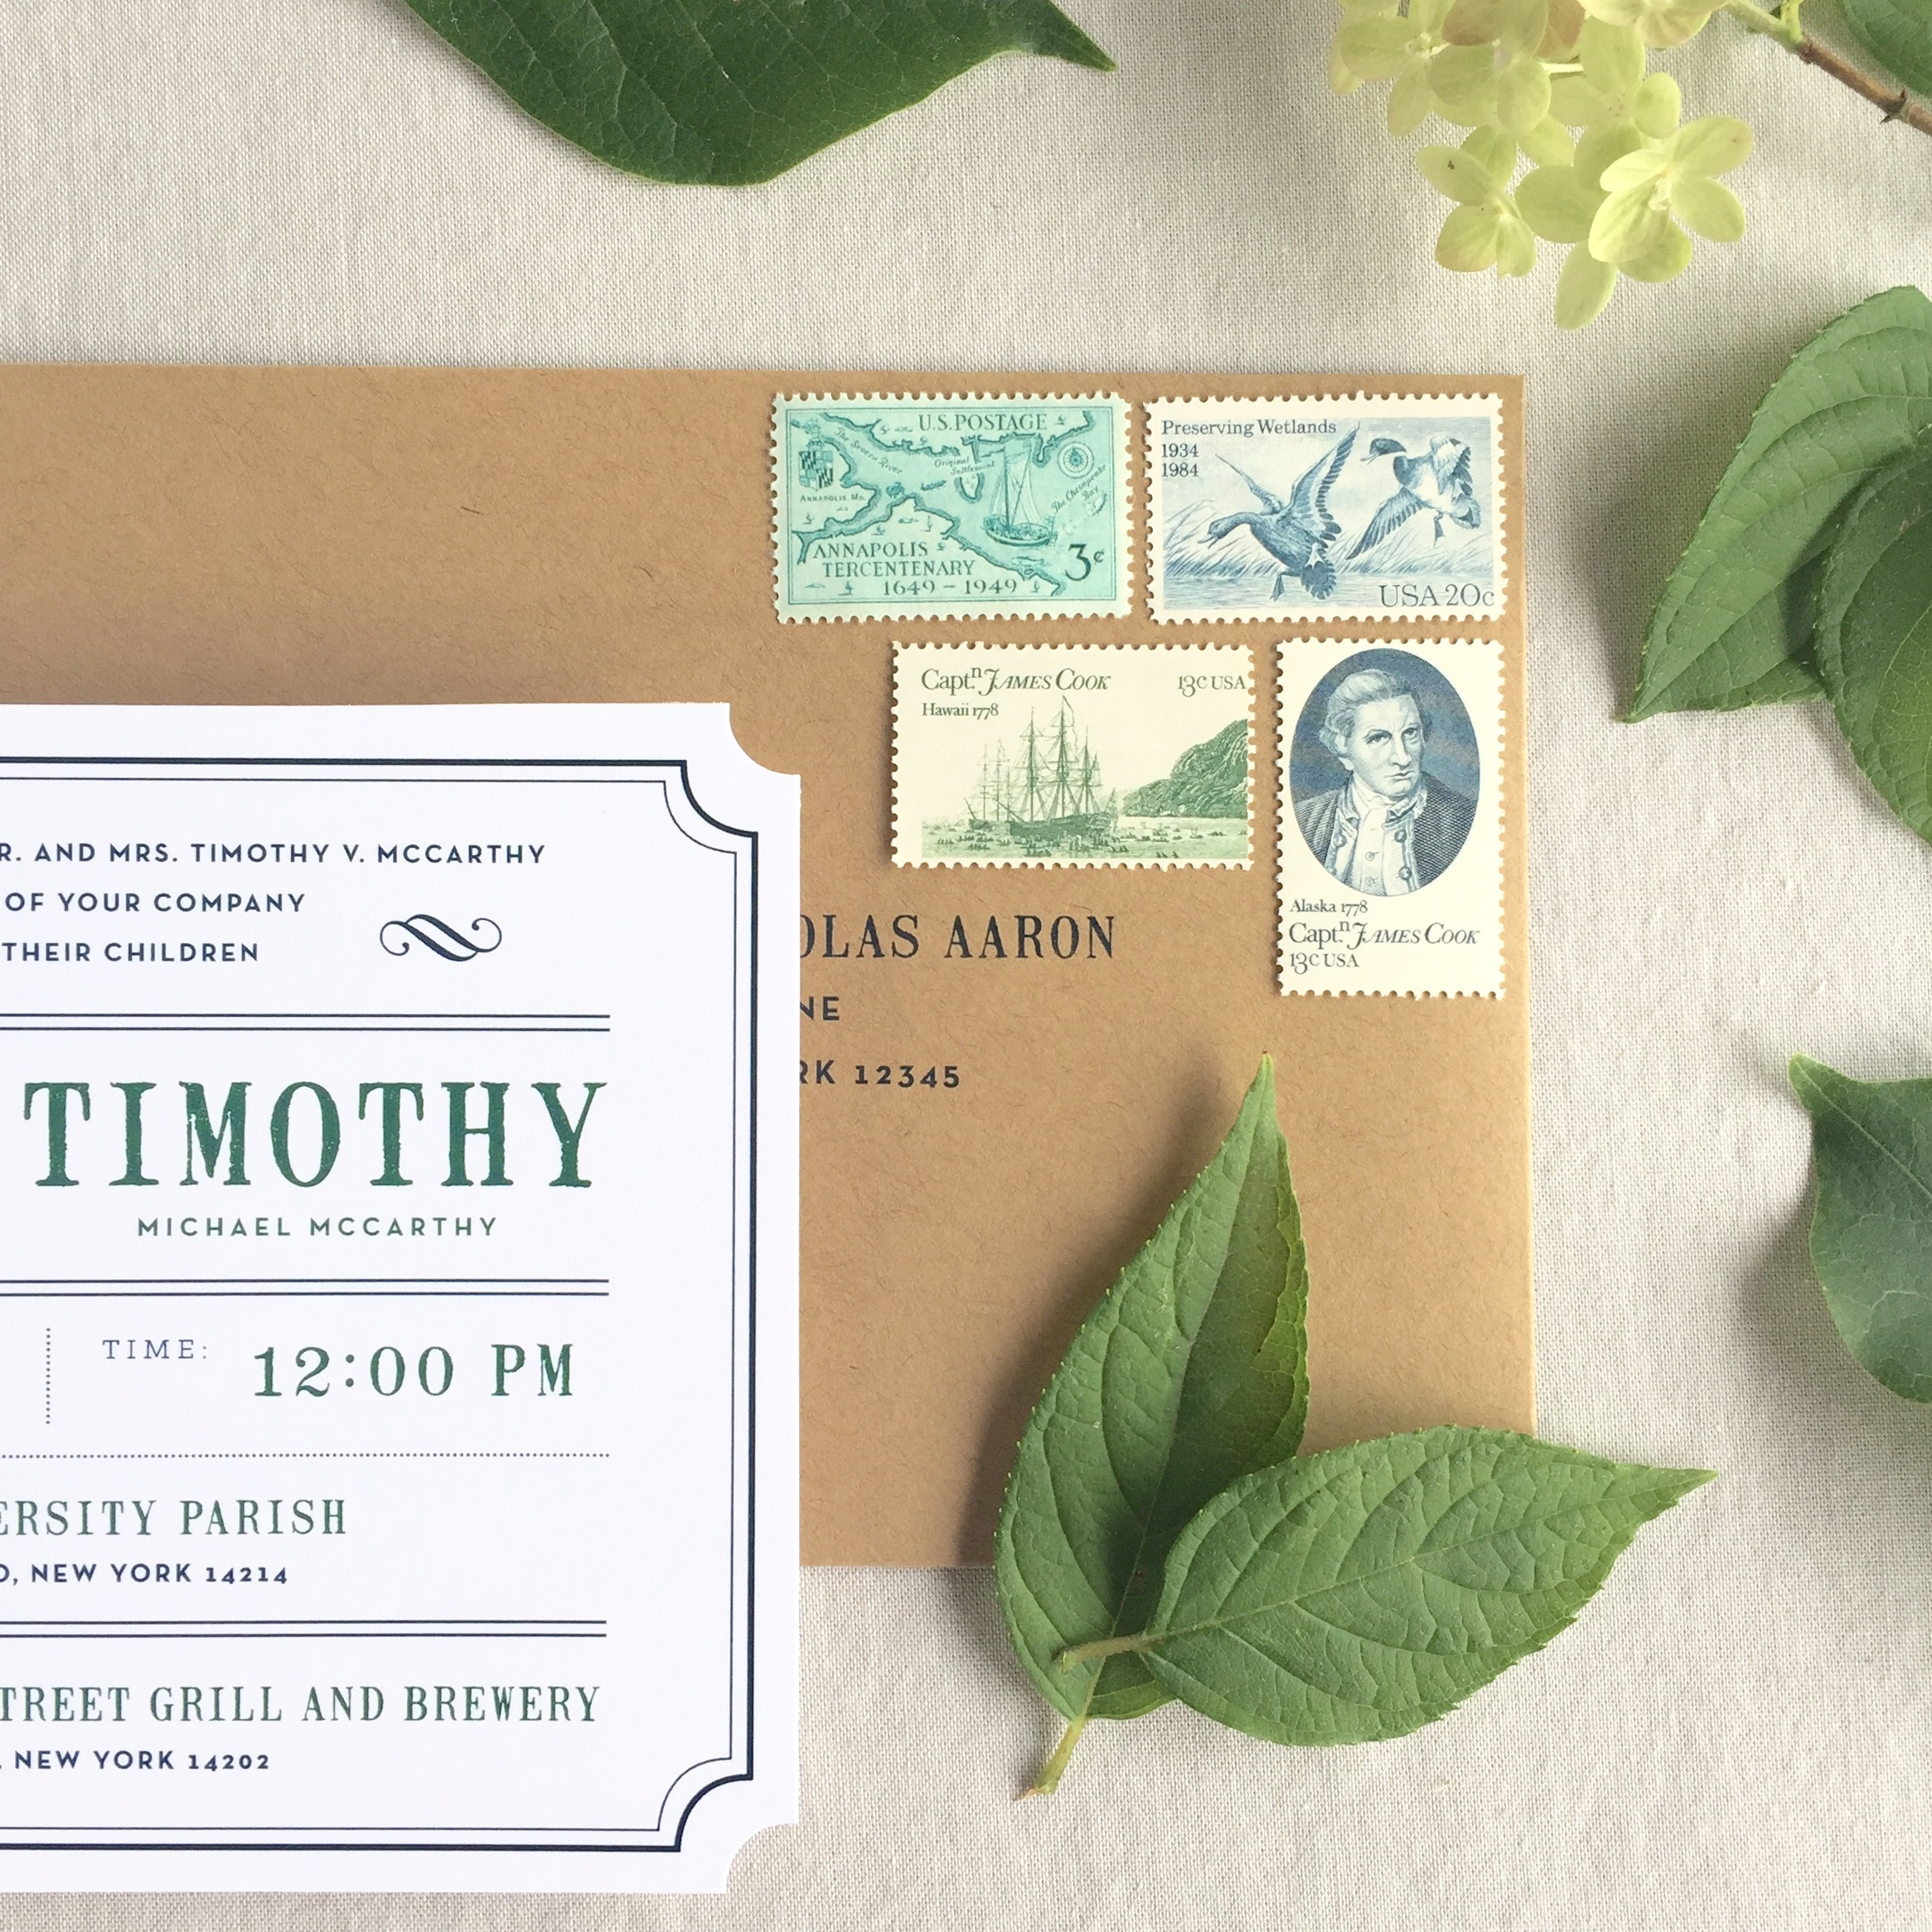 Maria_Bond_Design_Vintage_Buffalo_Wedding_Invite.jpg